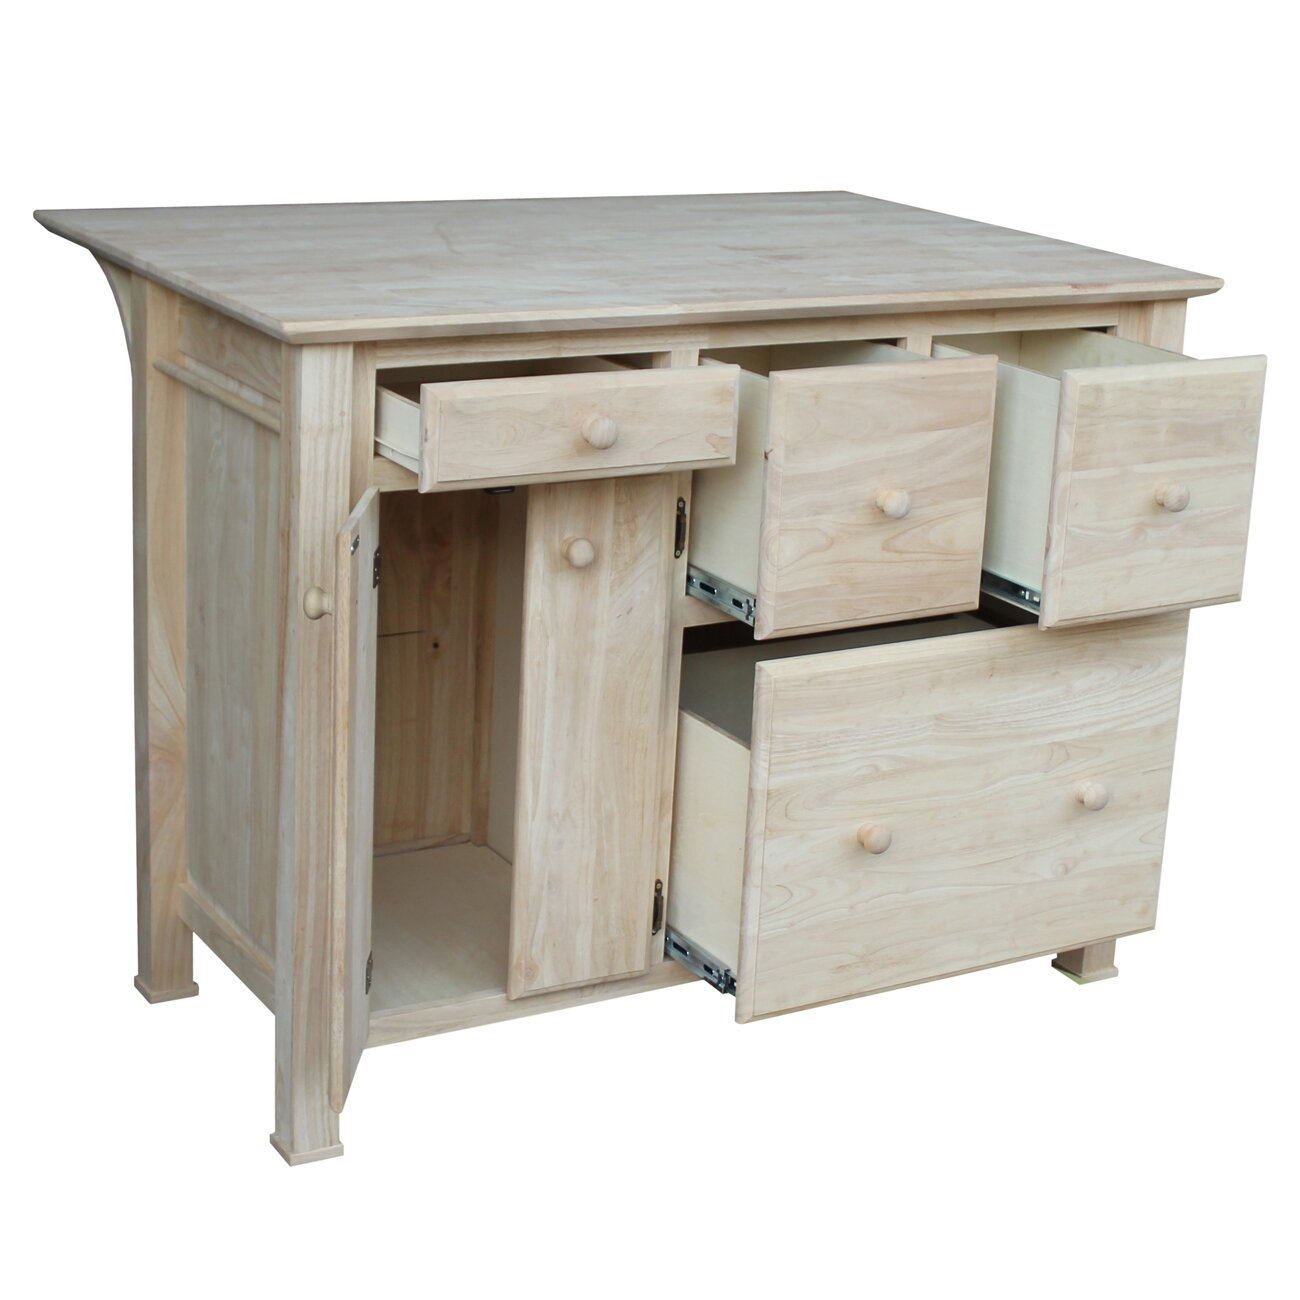 Rustic Kitchen Island Rustic Kitchen Islands Carts Youll Love Wayfair